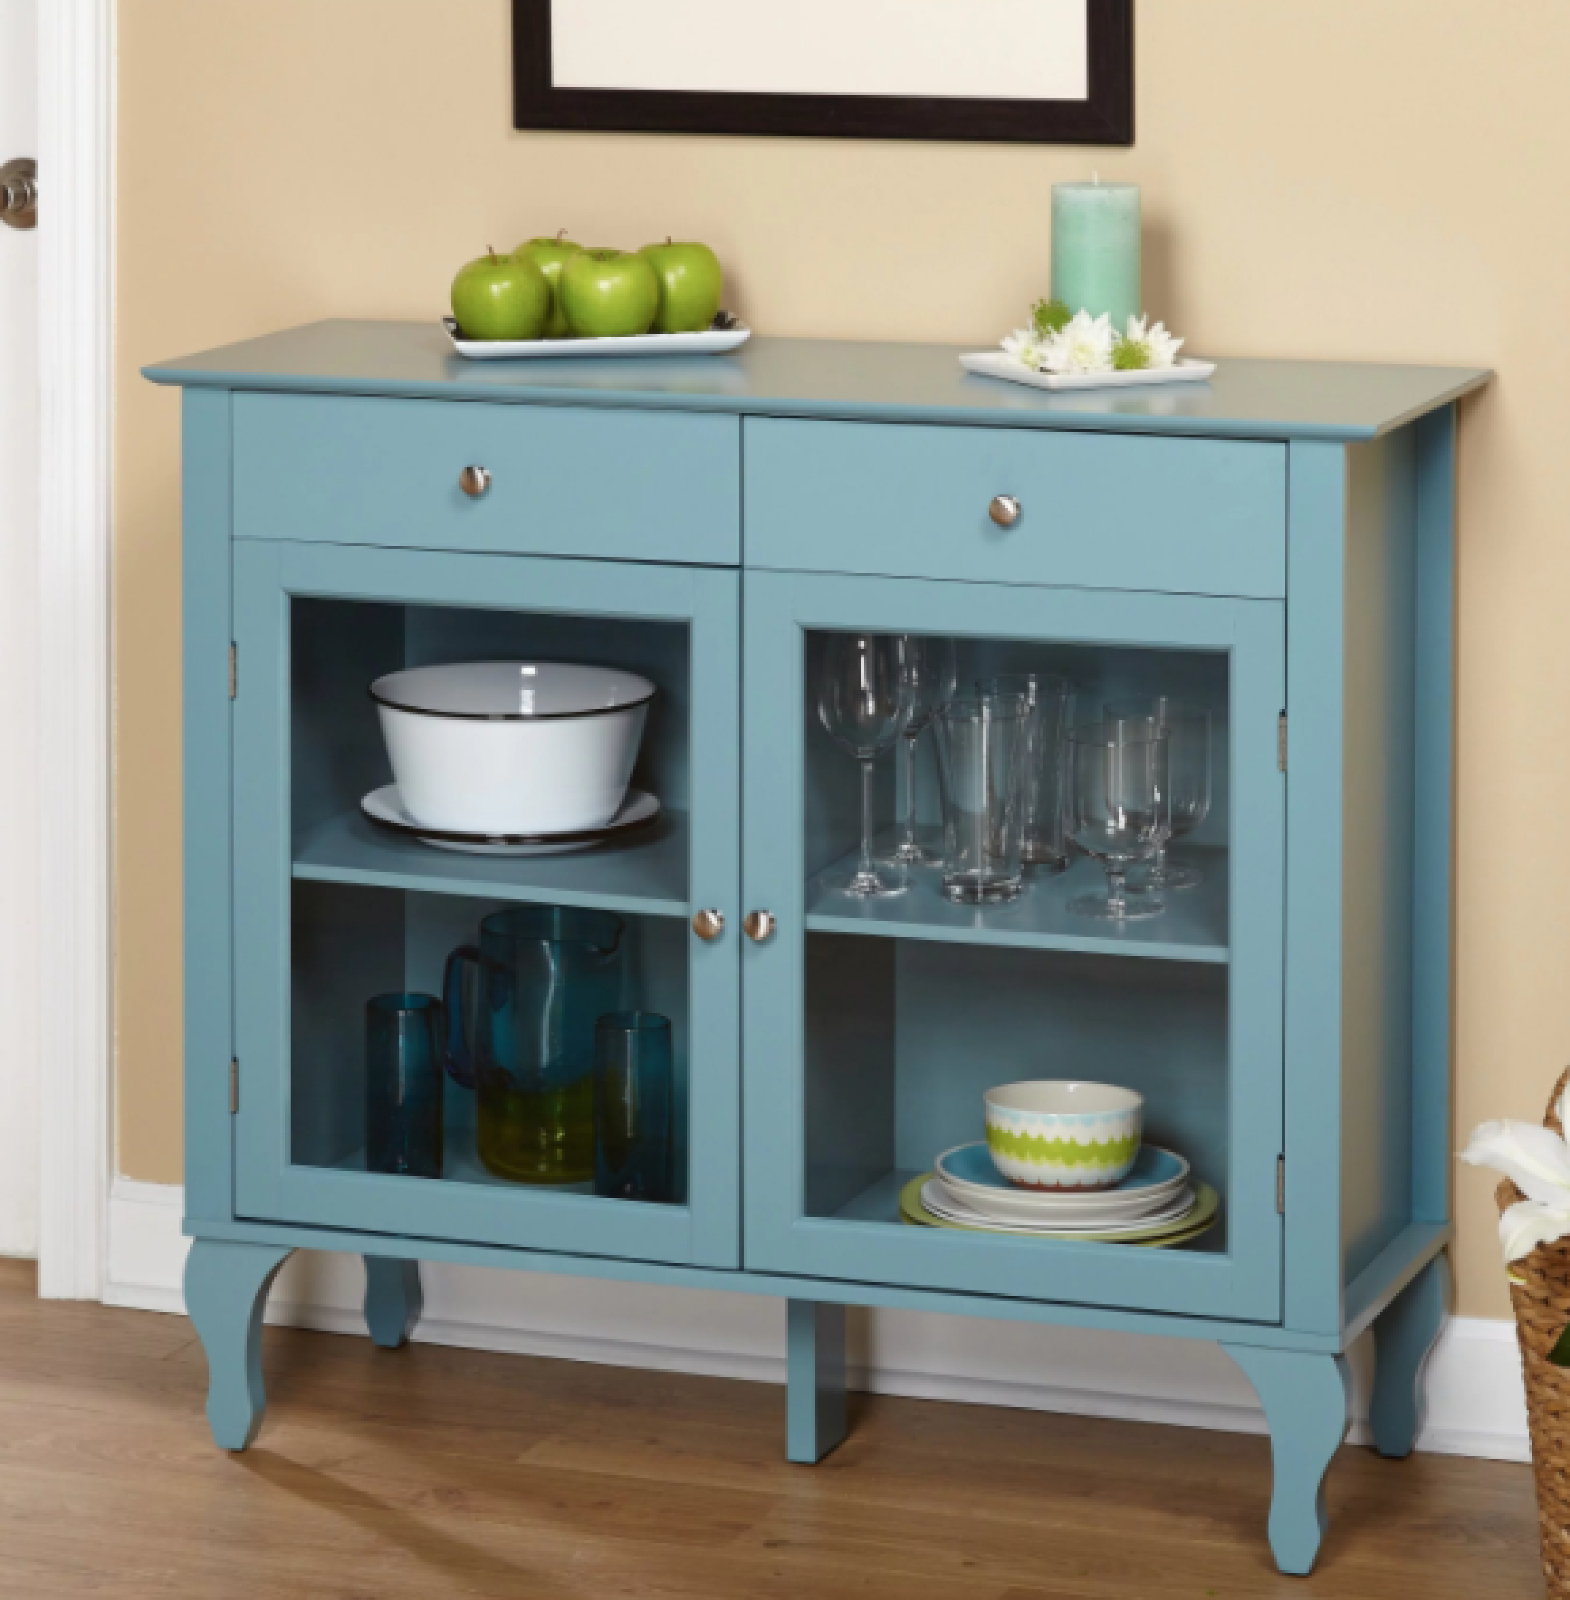 Sideboard Buffet Kitchen Cabinet Glass Door Shelve Drawer Teal Country Blue Chic Regarding Simple Living Layla Black Buffets (View 9 of 30)